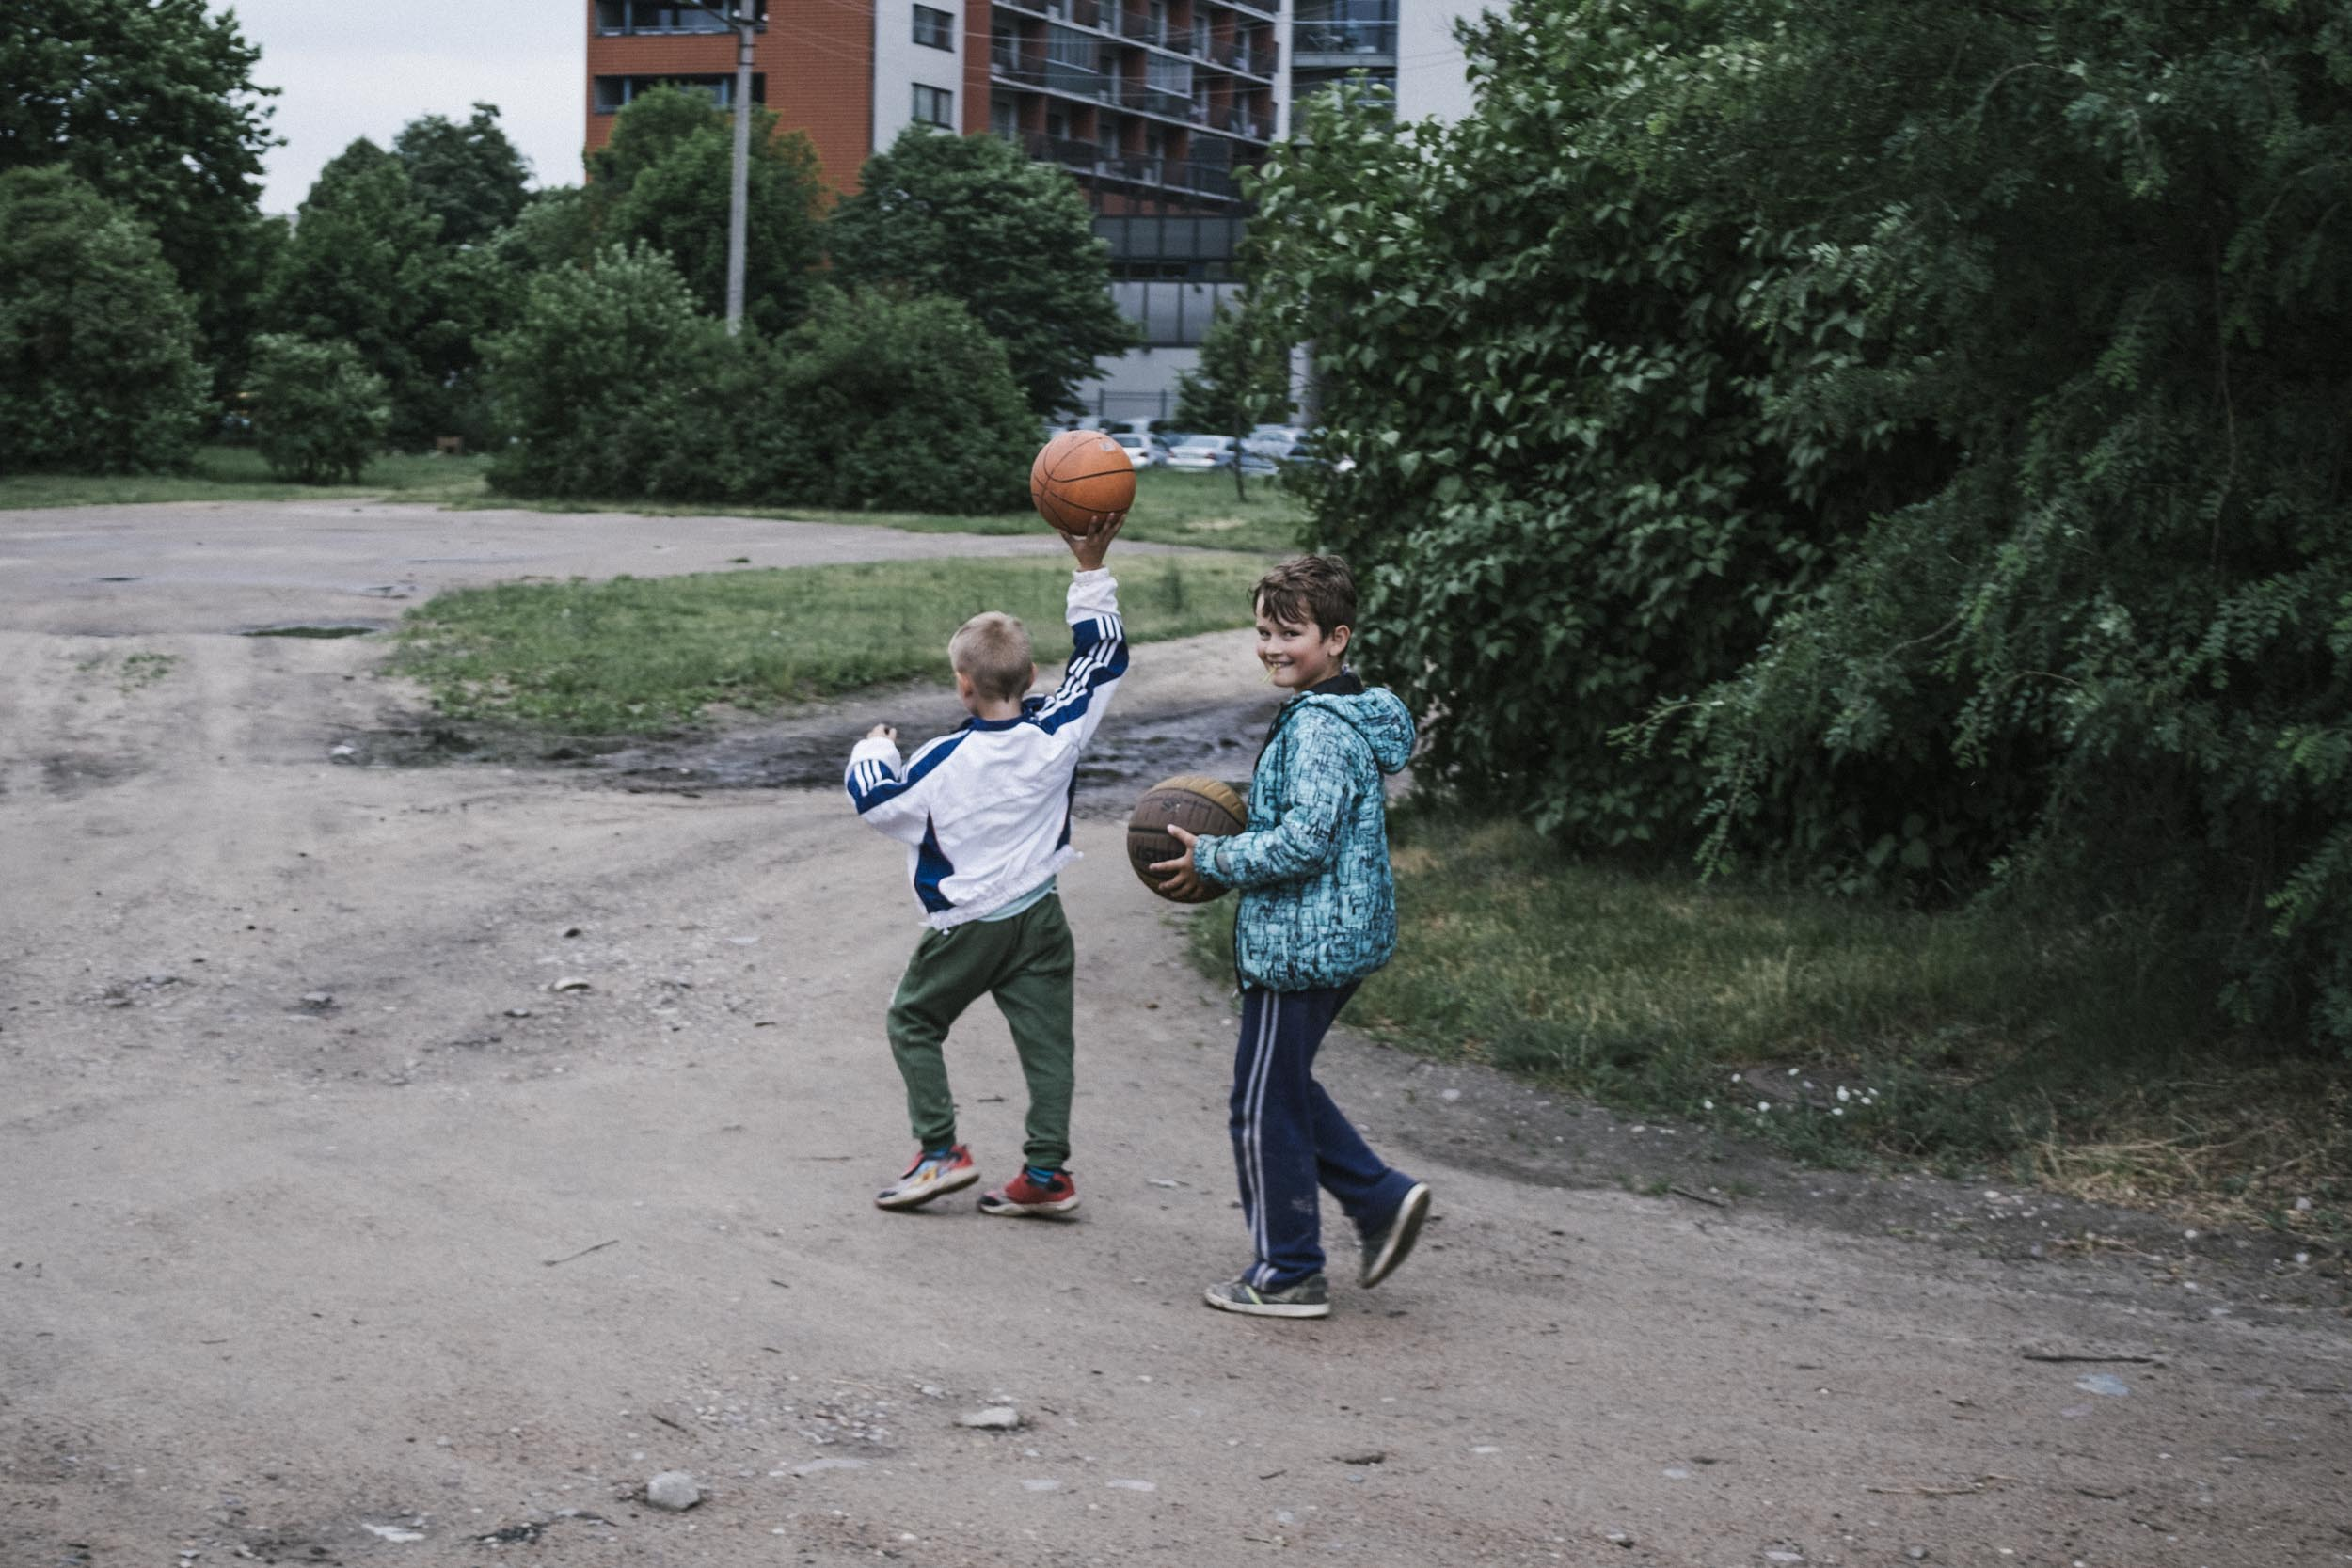 Kids with Basketballs